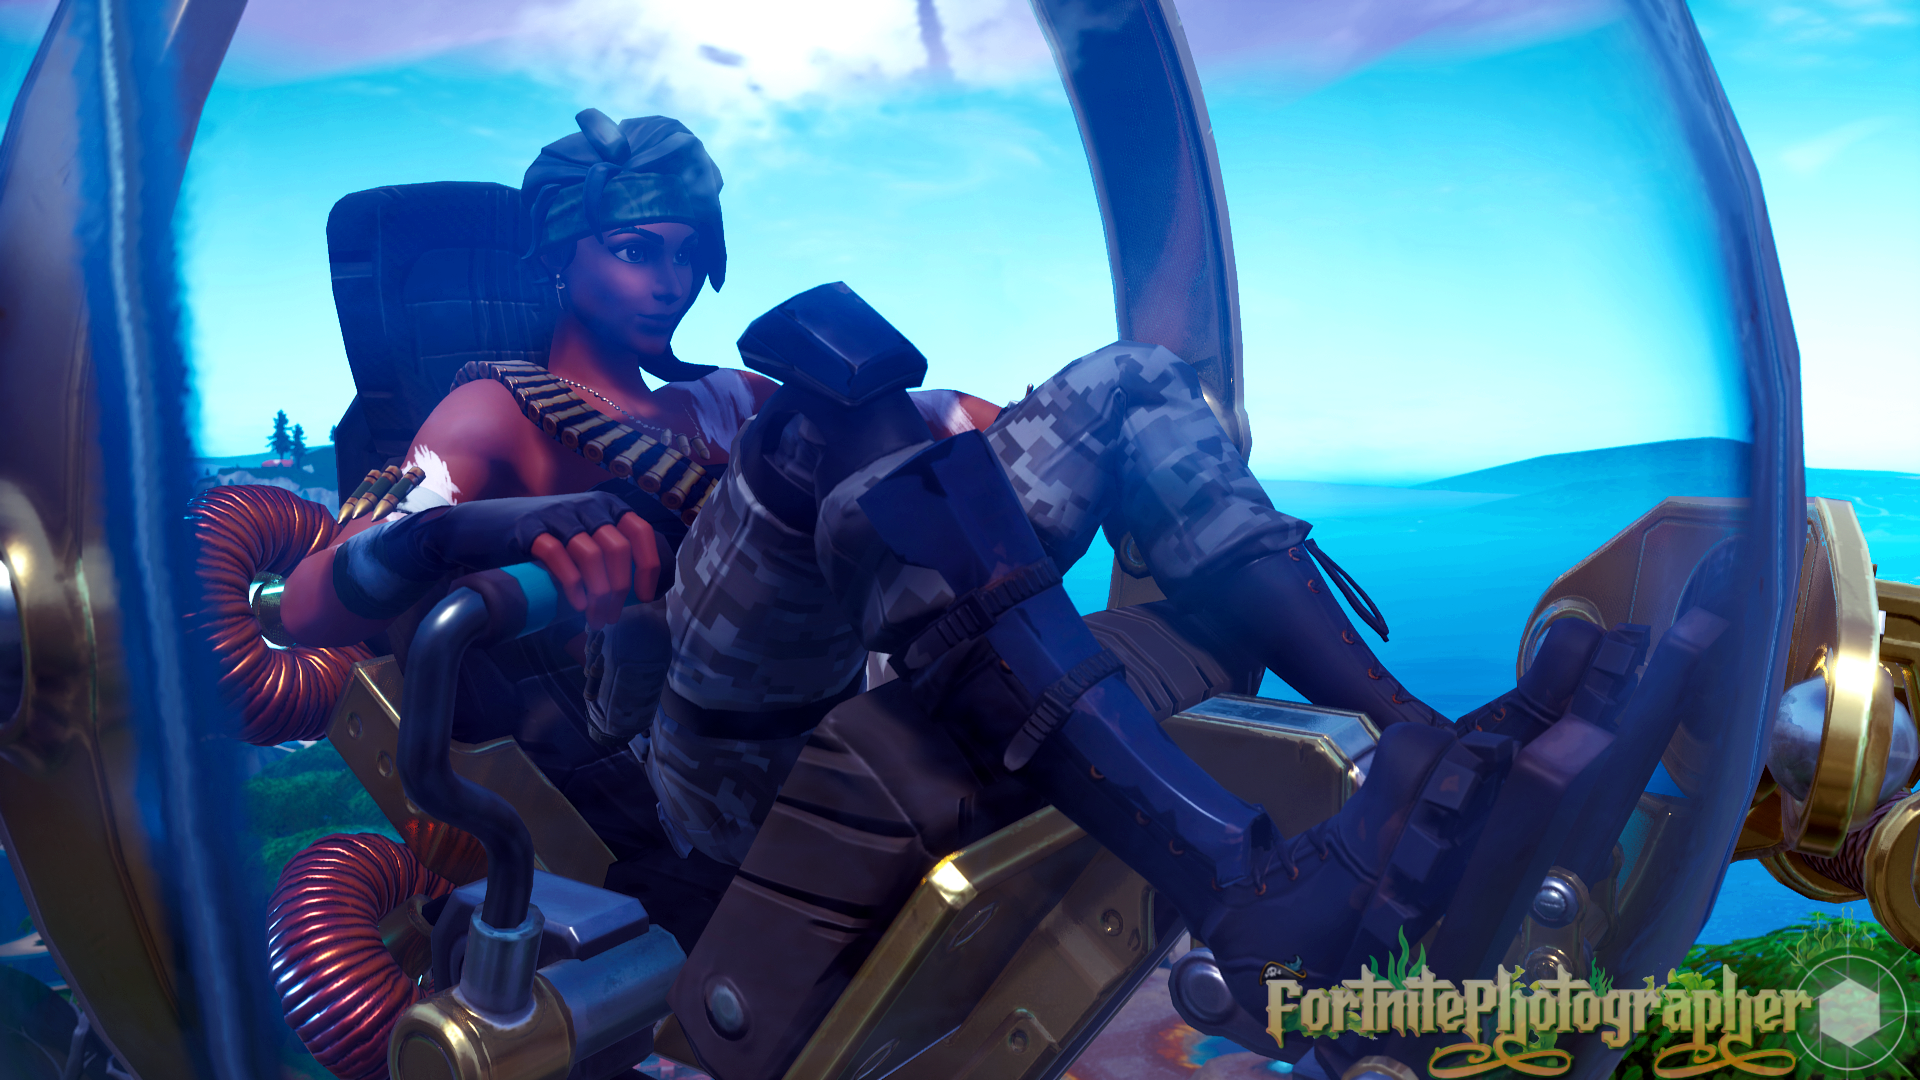 The Hunt Is On We Are Now 100 Twitter Fortnite Photographer Just Hit 100 Followers Thank You All So Much Bandolette Set 02 4 4 Fnphootographer On